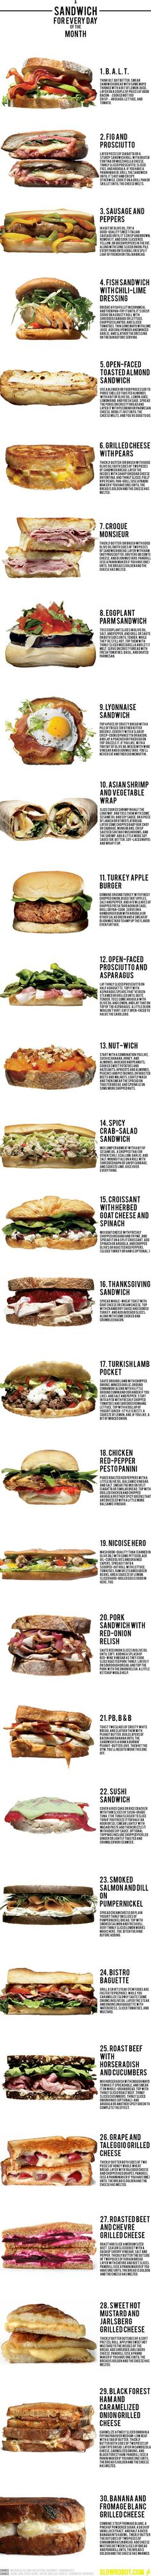 a sandwich for every day of the month....